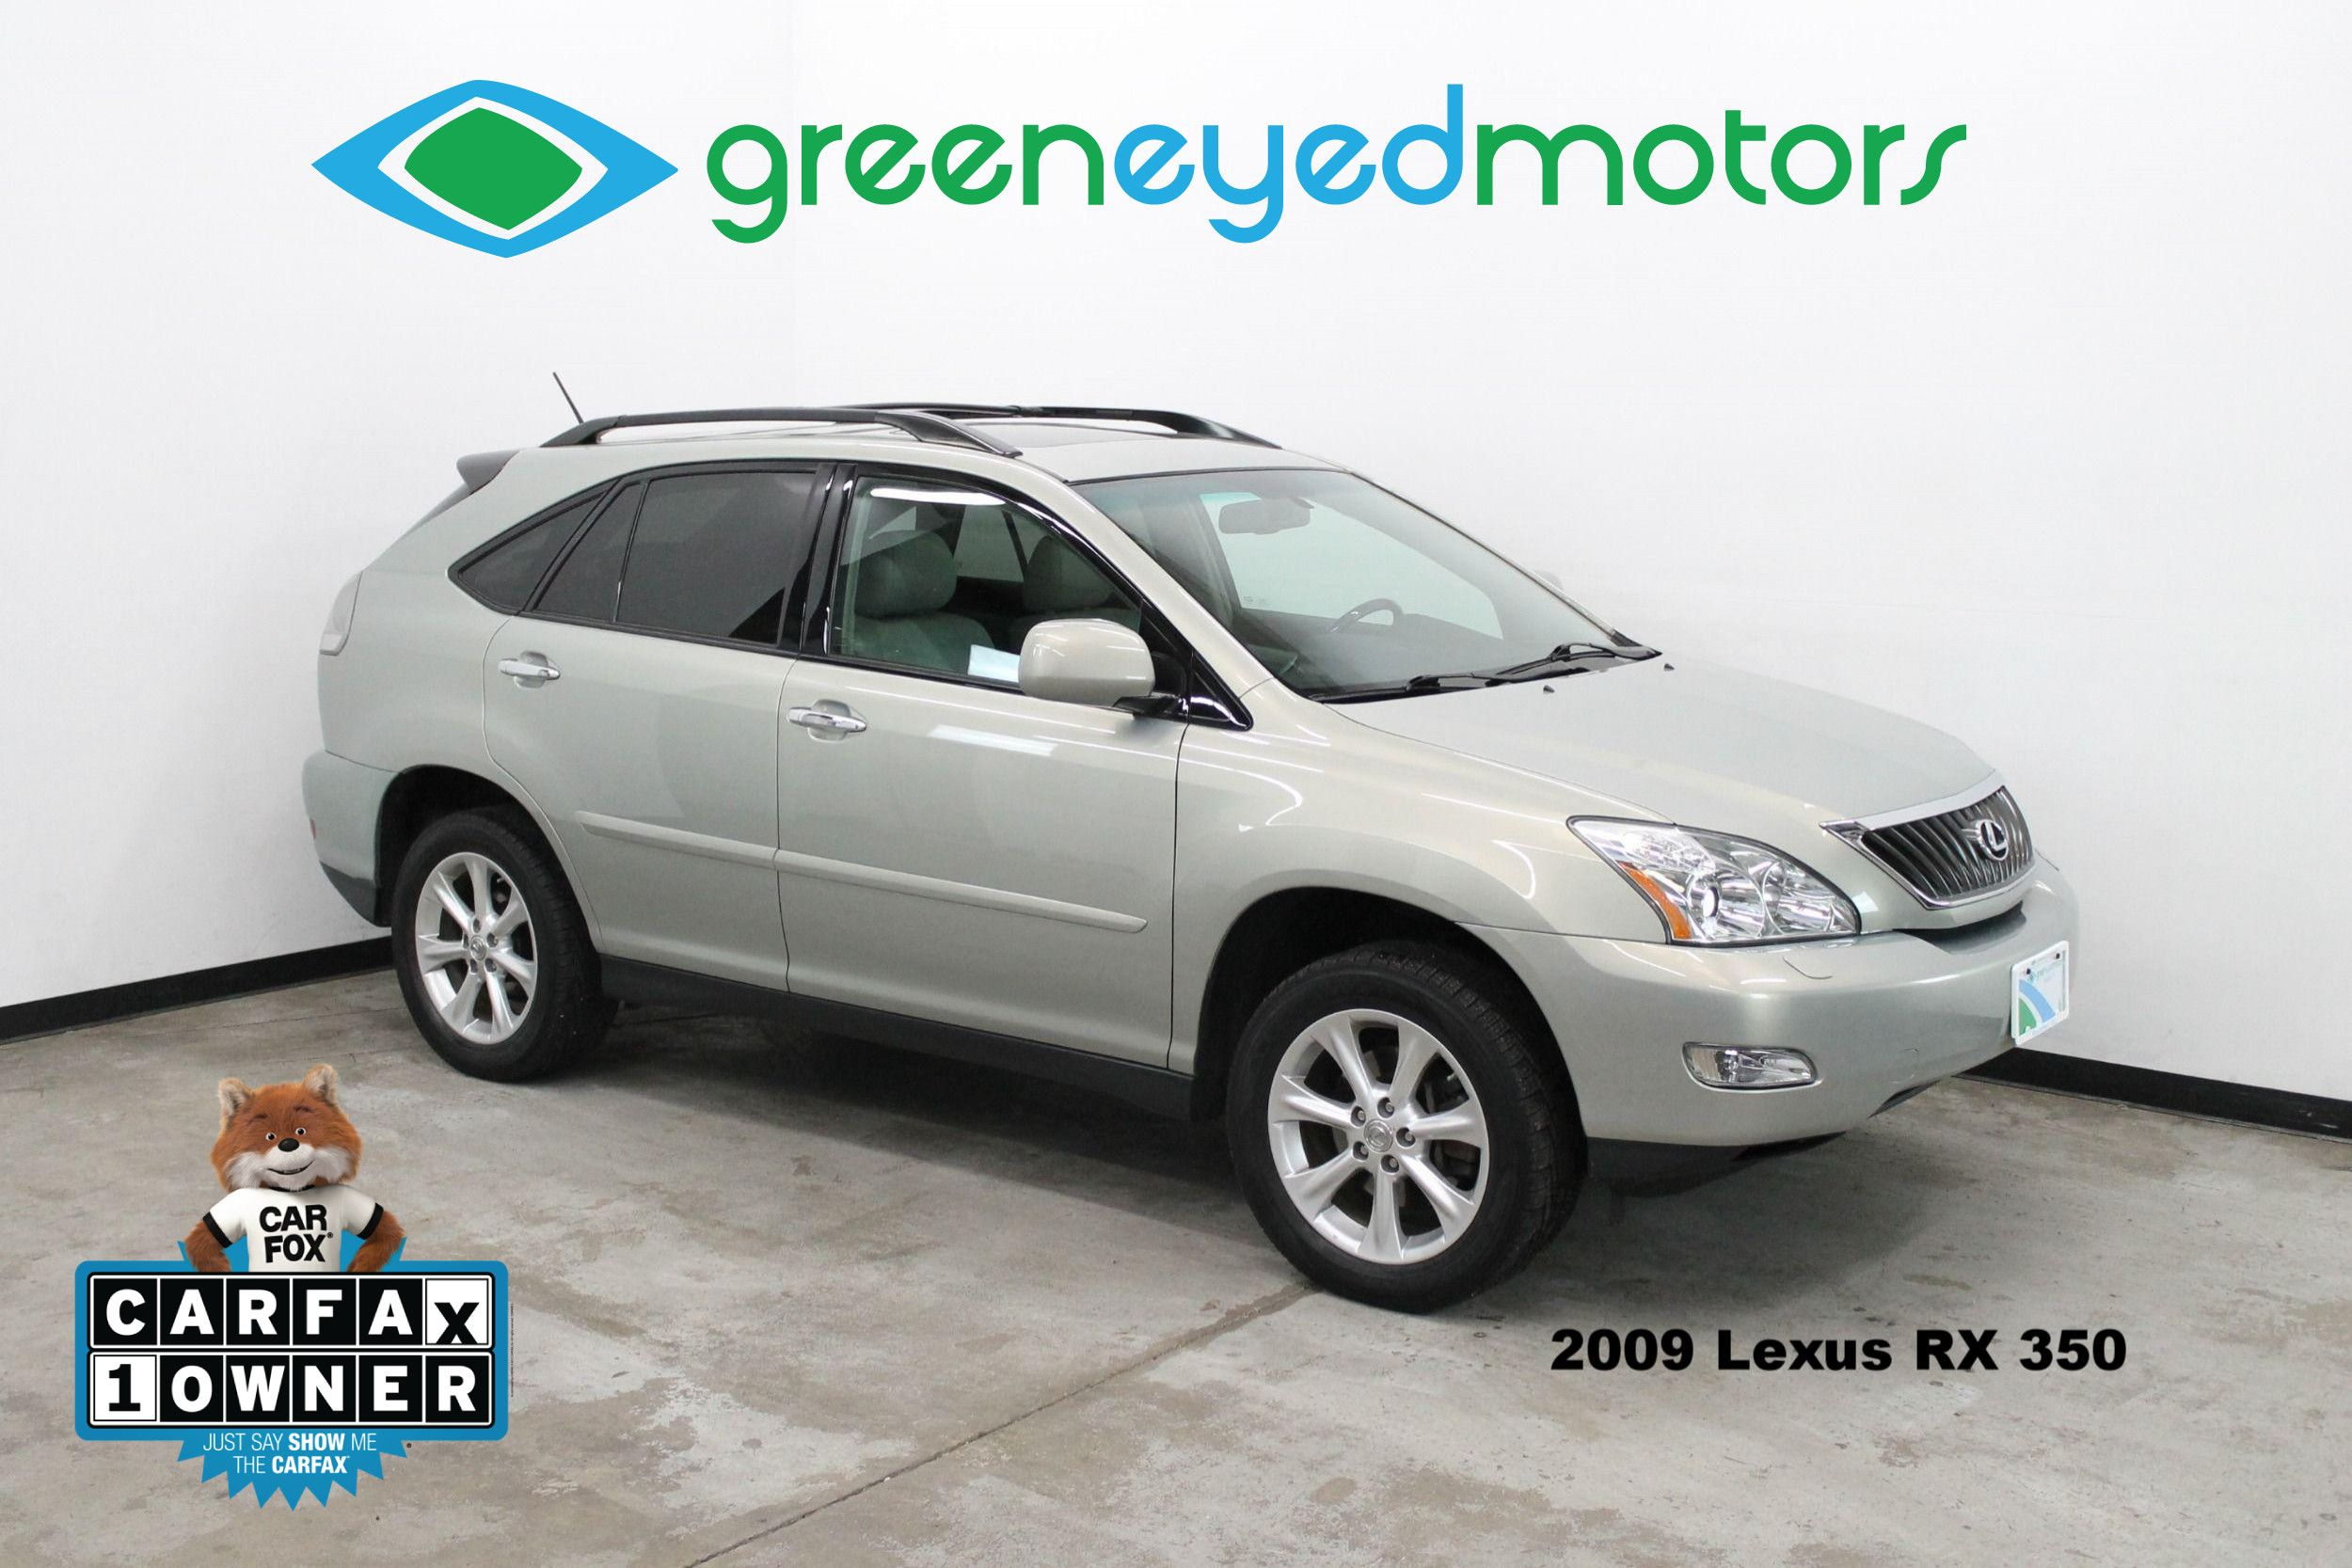 2009 lexus rx 350 green eyed motors rh greeneyedmotors com 2009 Lexus RX 350 Problems 2009 Lexus RX 350 Engine Cover Plastics